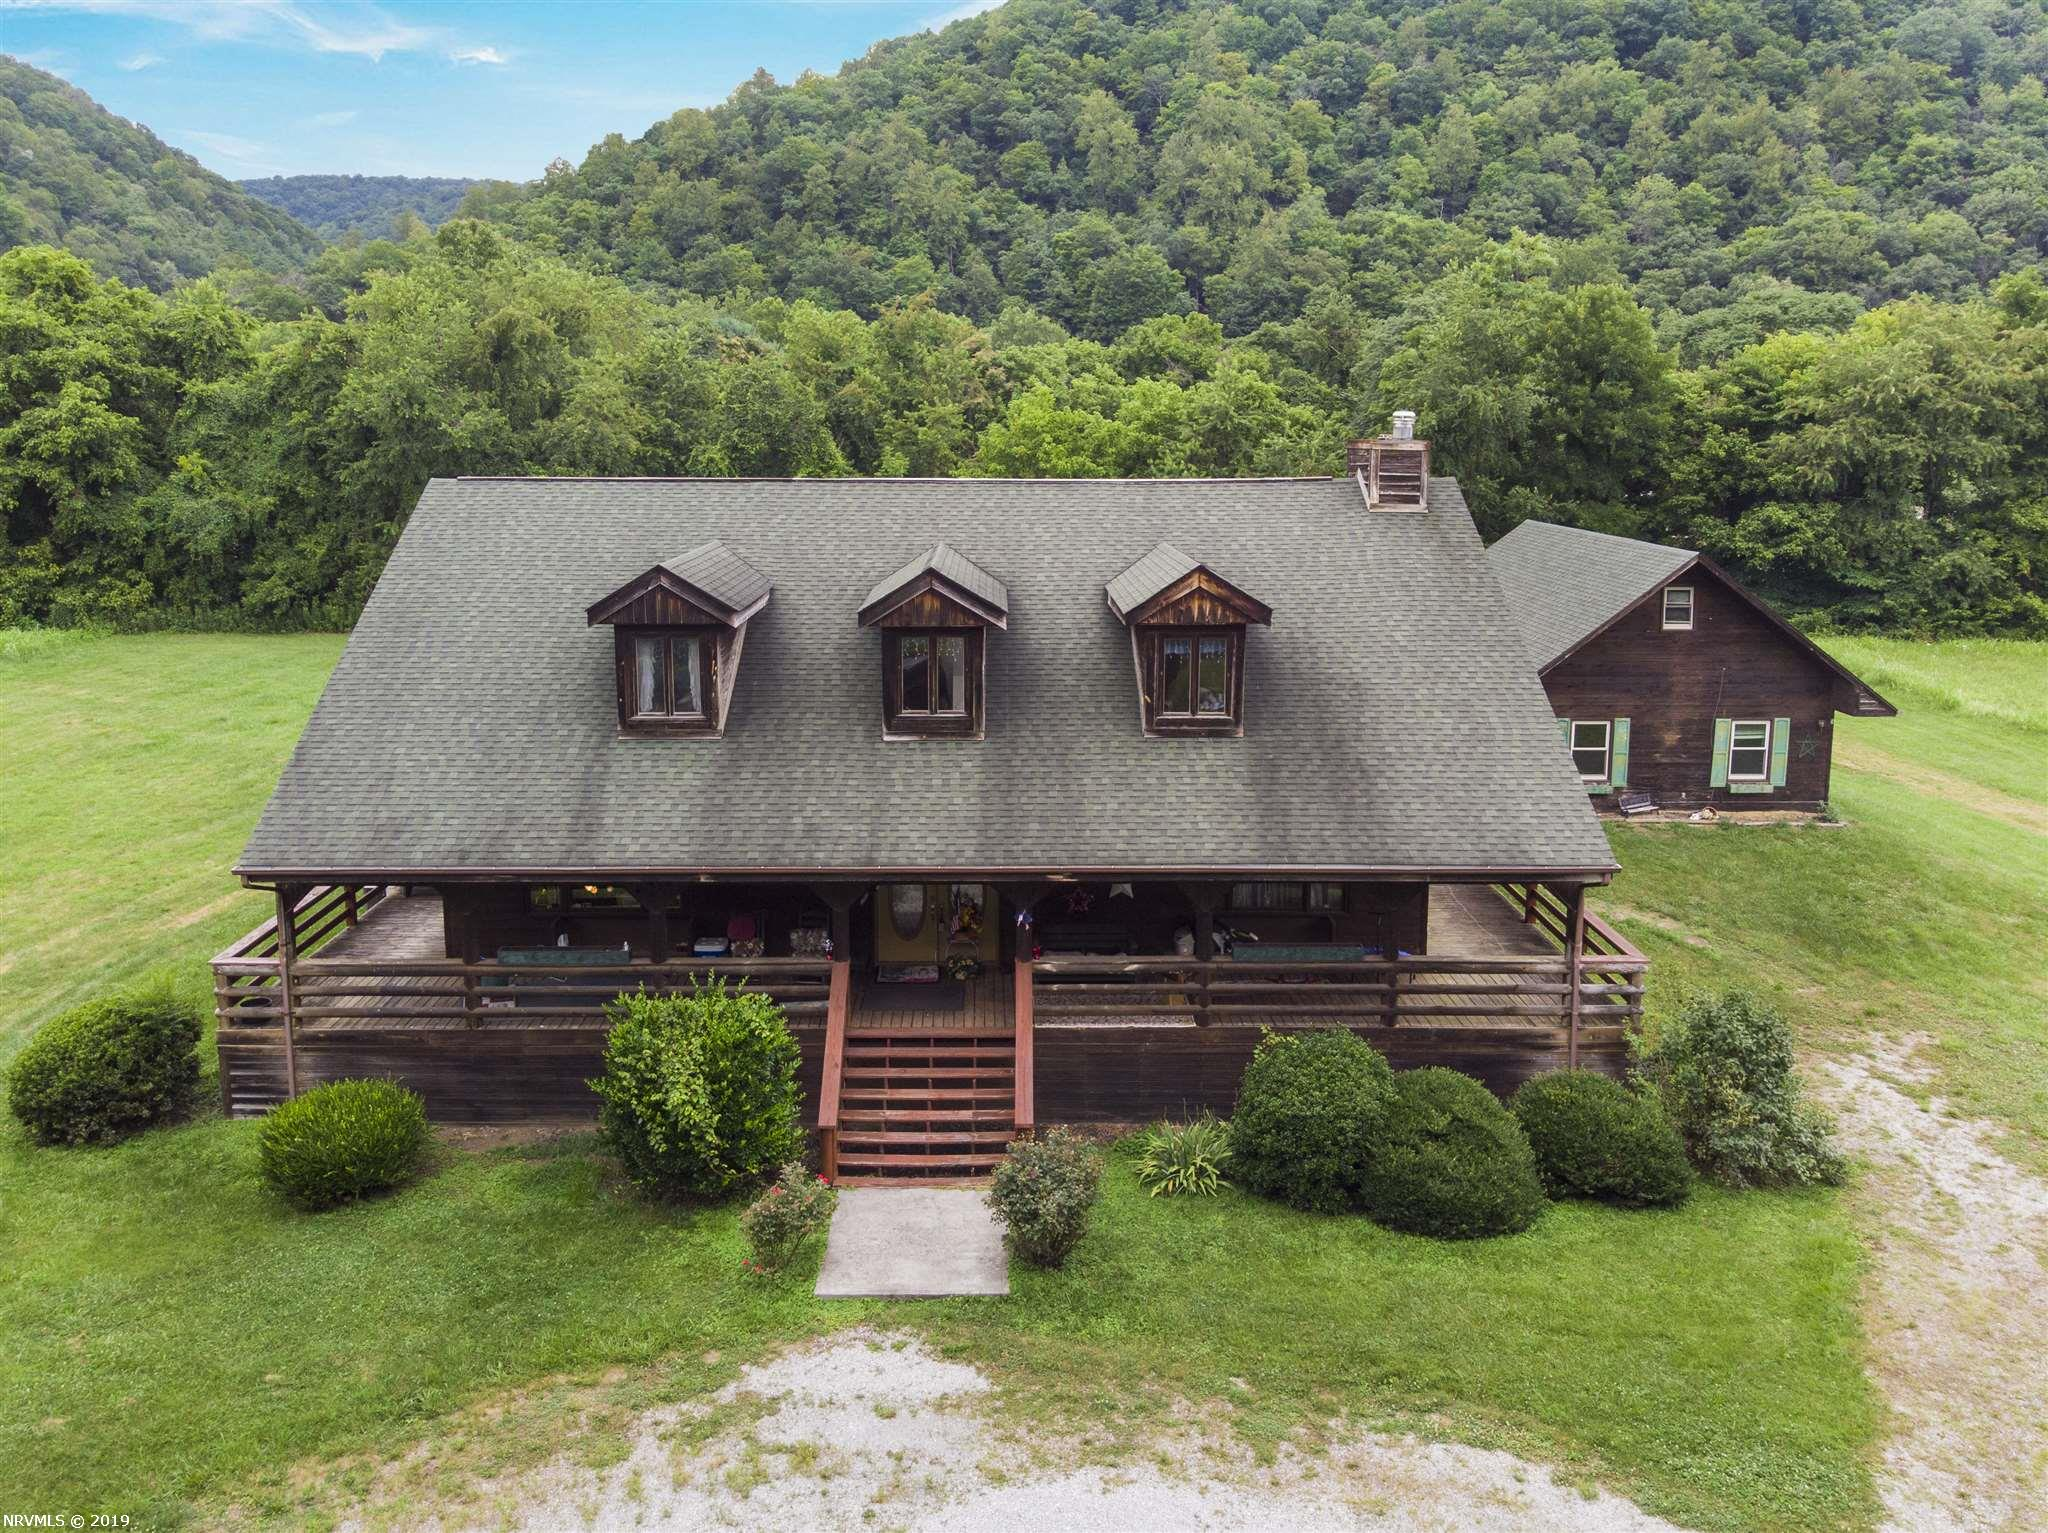 This Beautiful cedar-sided home sits on 7.47 acres in Elliston conveniently located between Christiansburg and Salem.  Rustic log cabin feel, wrap around porch, gas fireplace, vaulted ceilings, exposed beams, large open floor plan, custom cabinets and much more.  Separate guest house with kitchen on site.  Wide open space with barn is perfect for Horse lovers or mini farm enthusiasts.  Come see for yourself!